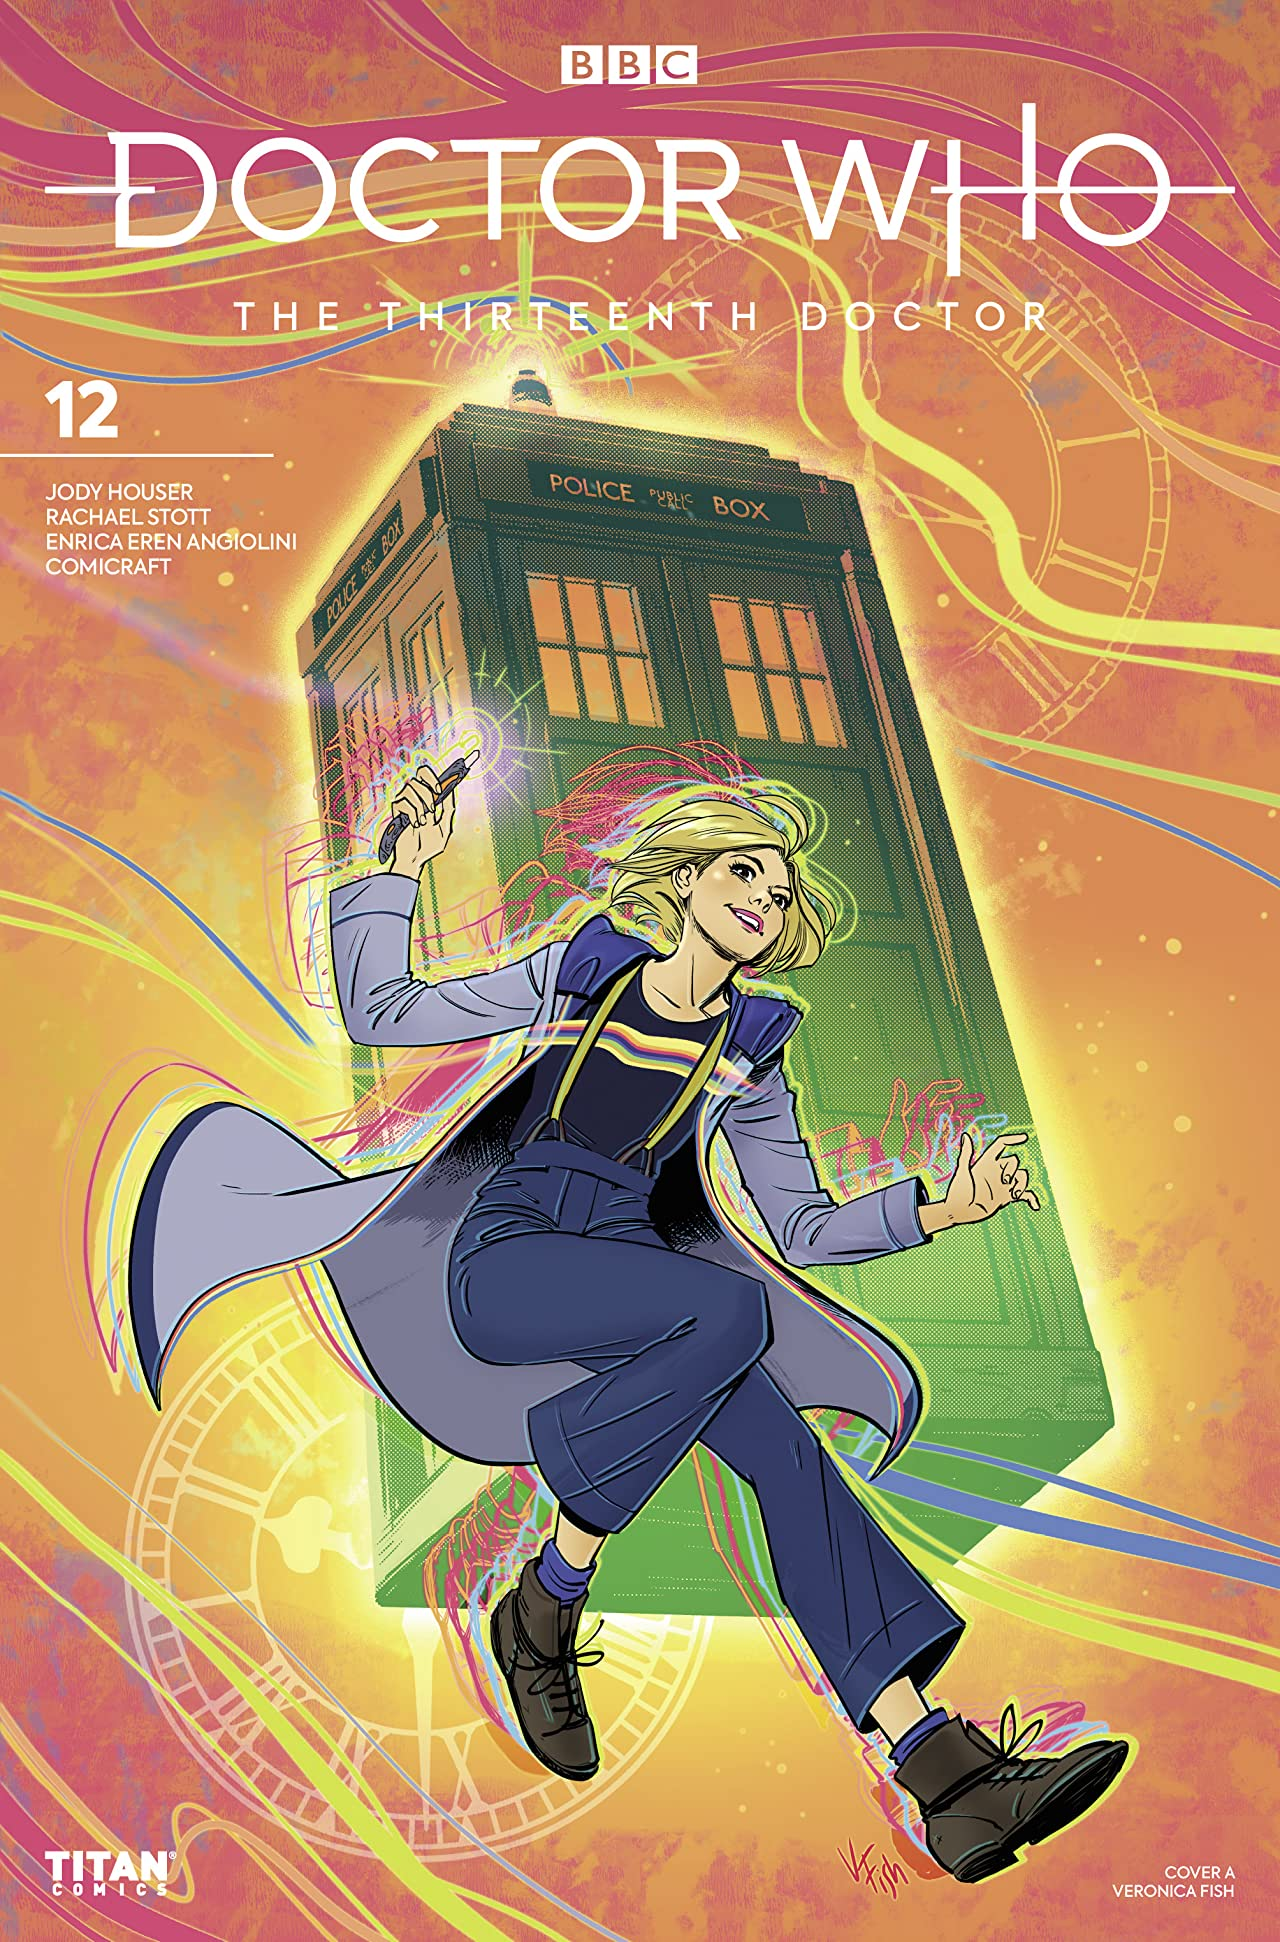 Doctor Who: The Thirteenth Doctor No.12